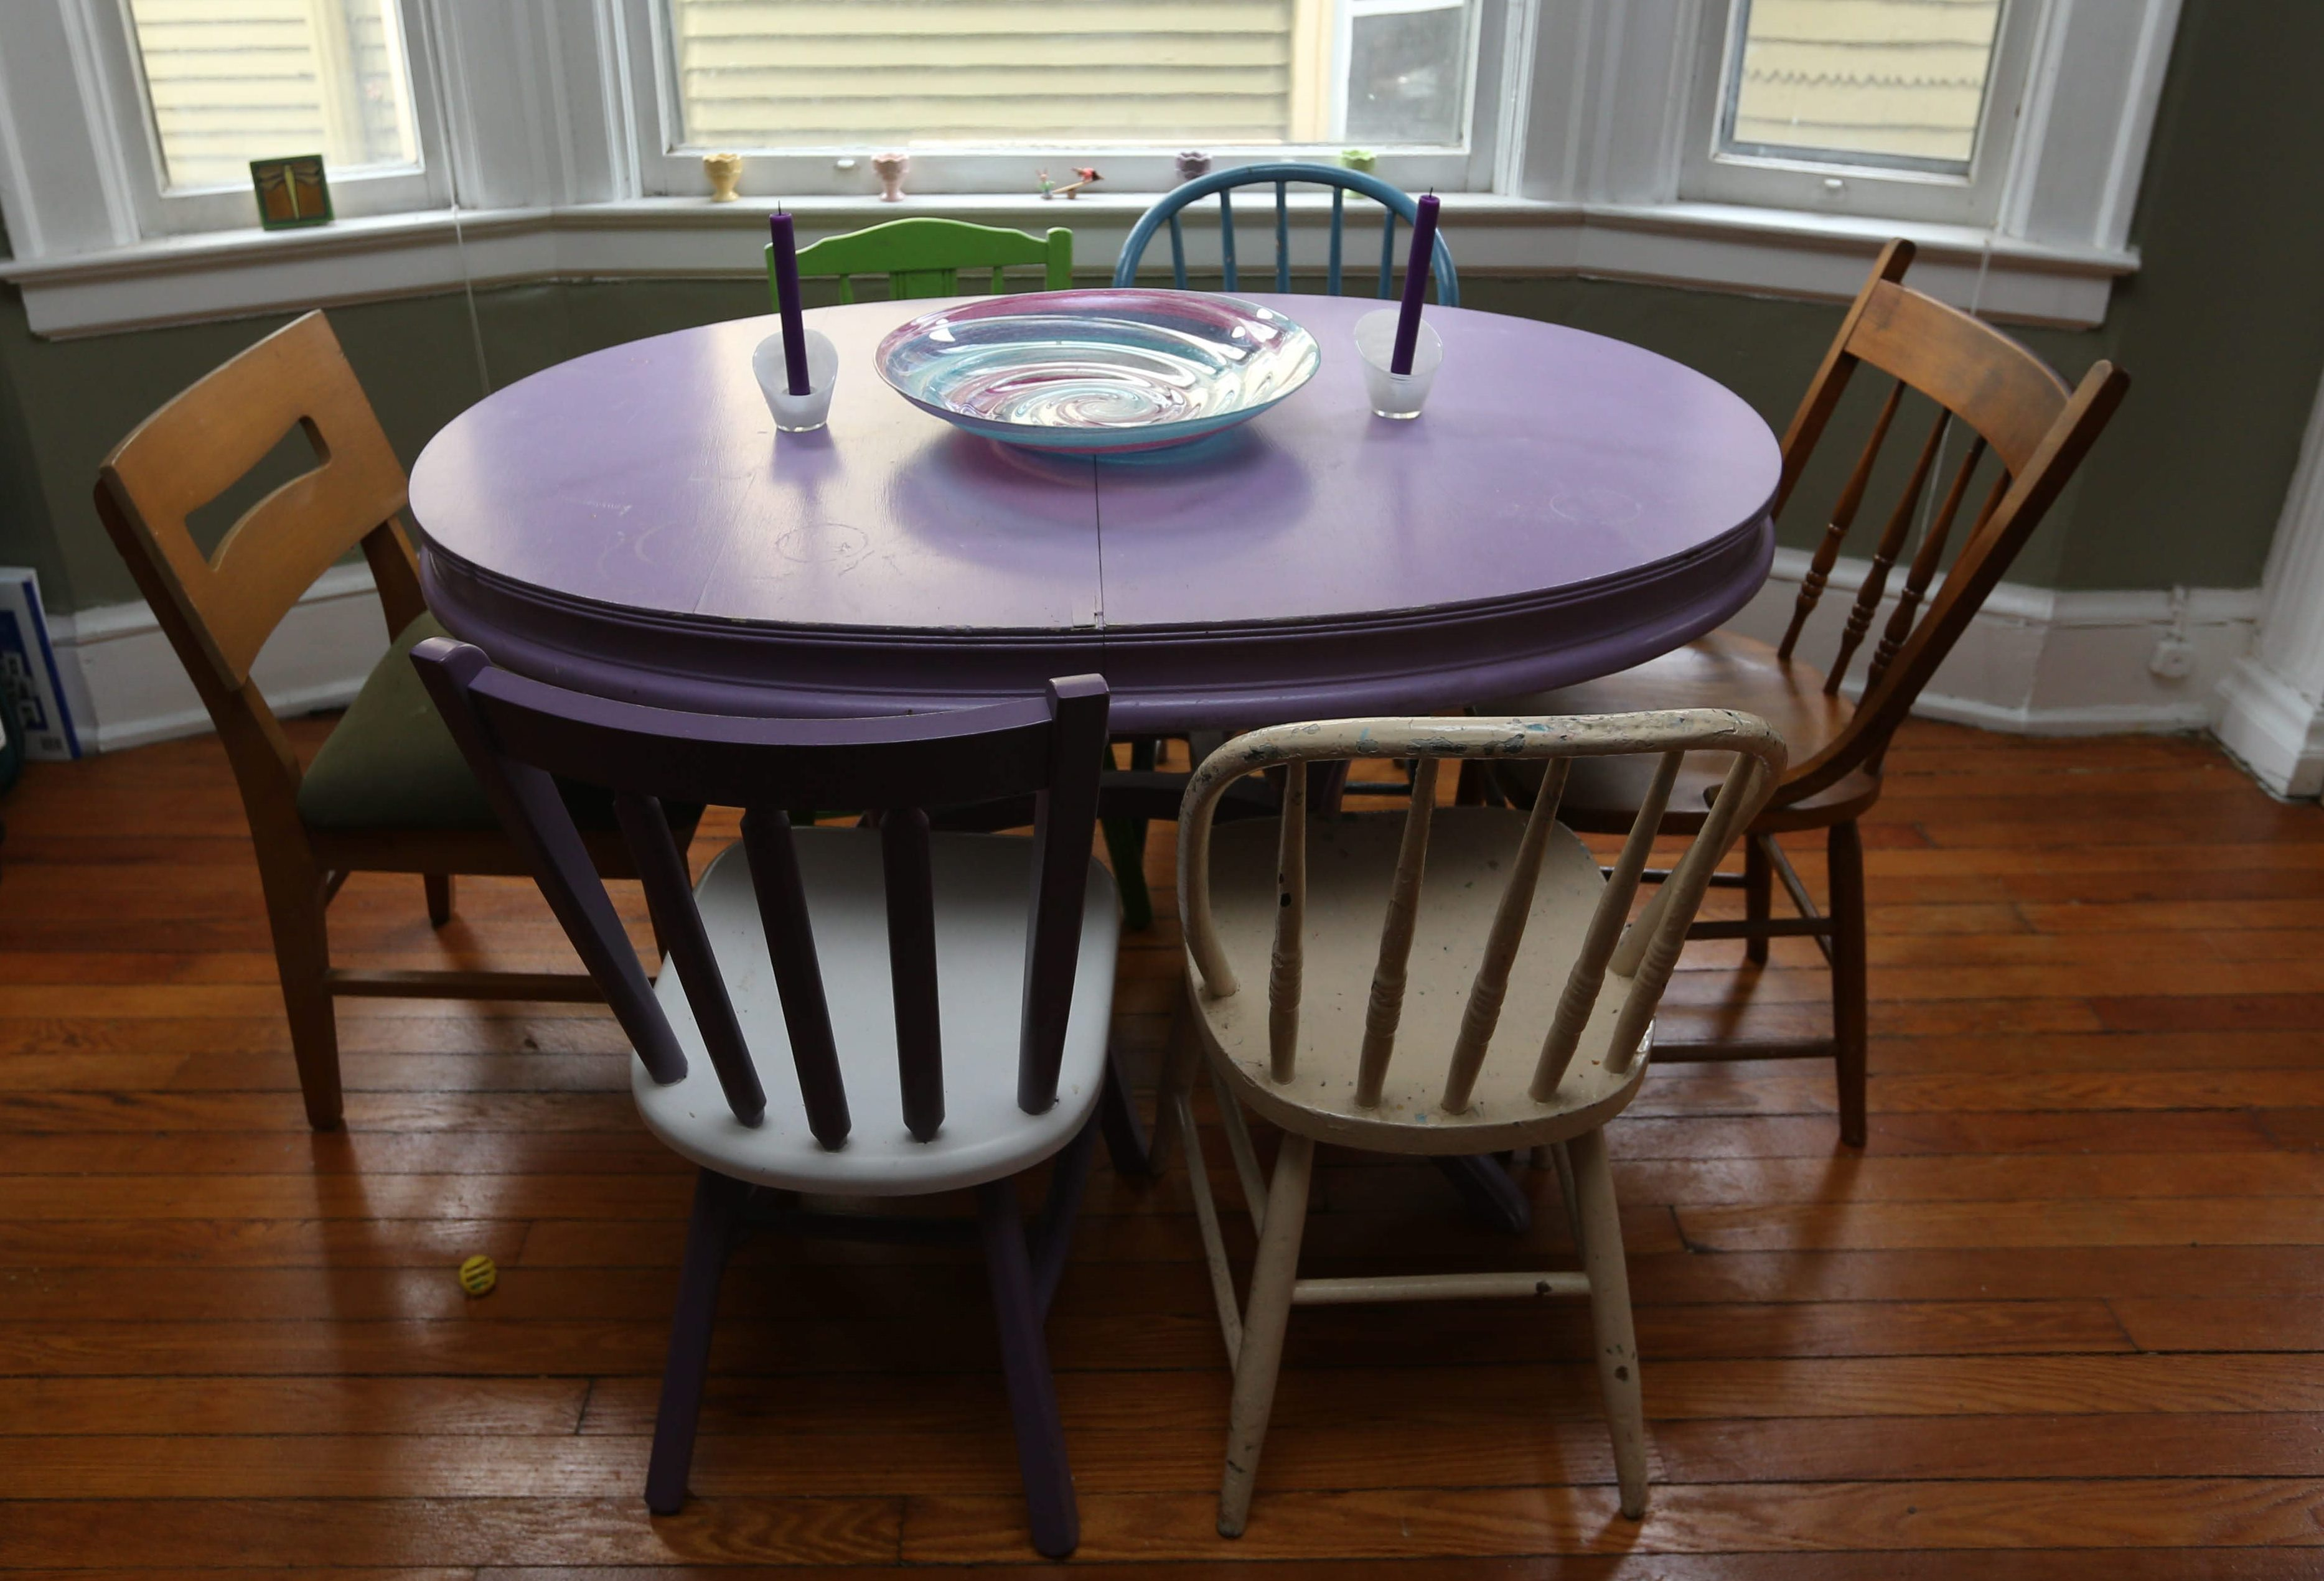 Elmwood Village resident Therese Deutschlander painted the dining chairs in her apartment purple, turquoise and green, while leaving the other three in their original finish. Her place was featured as The Buffalo News 'Home of the Month' in April 2016. (Photo by Sharon Cantillon/Buffalo News)